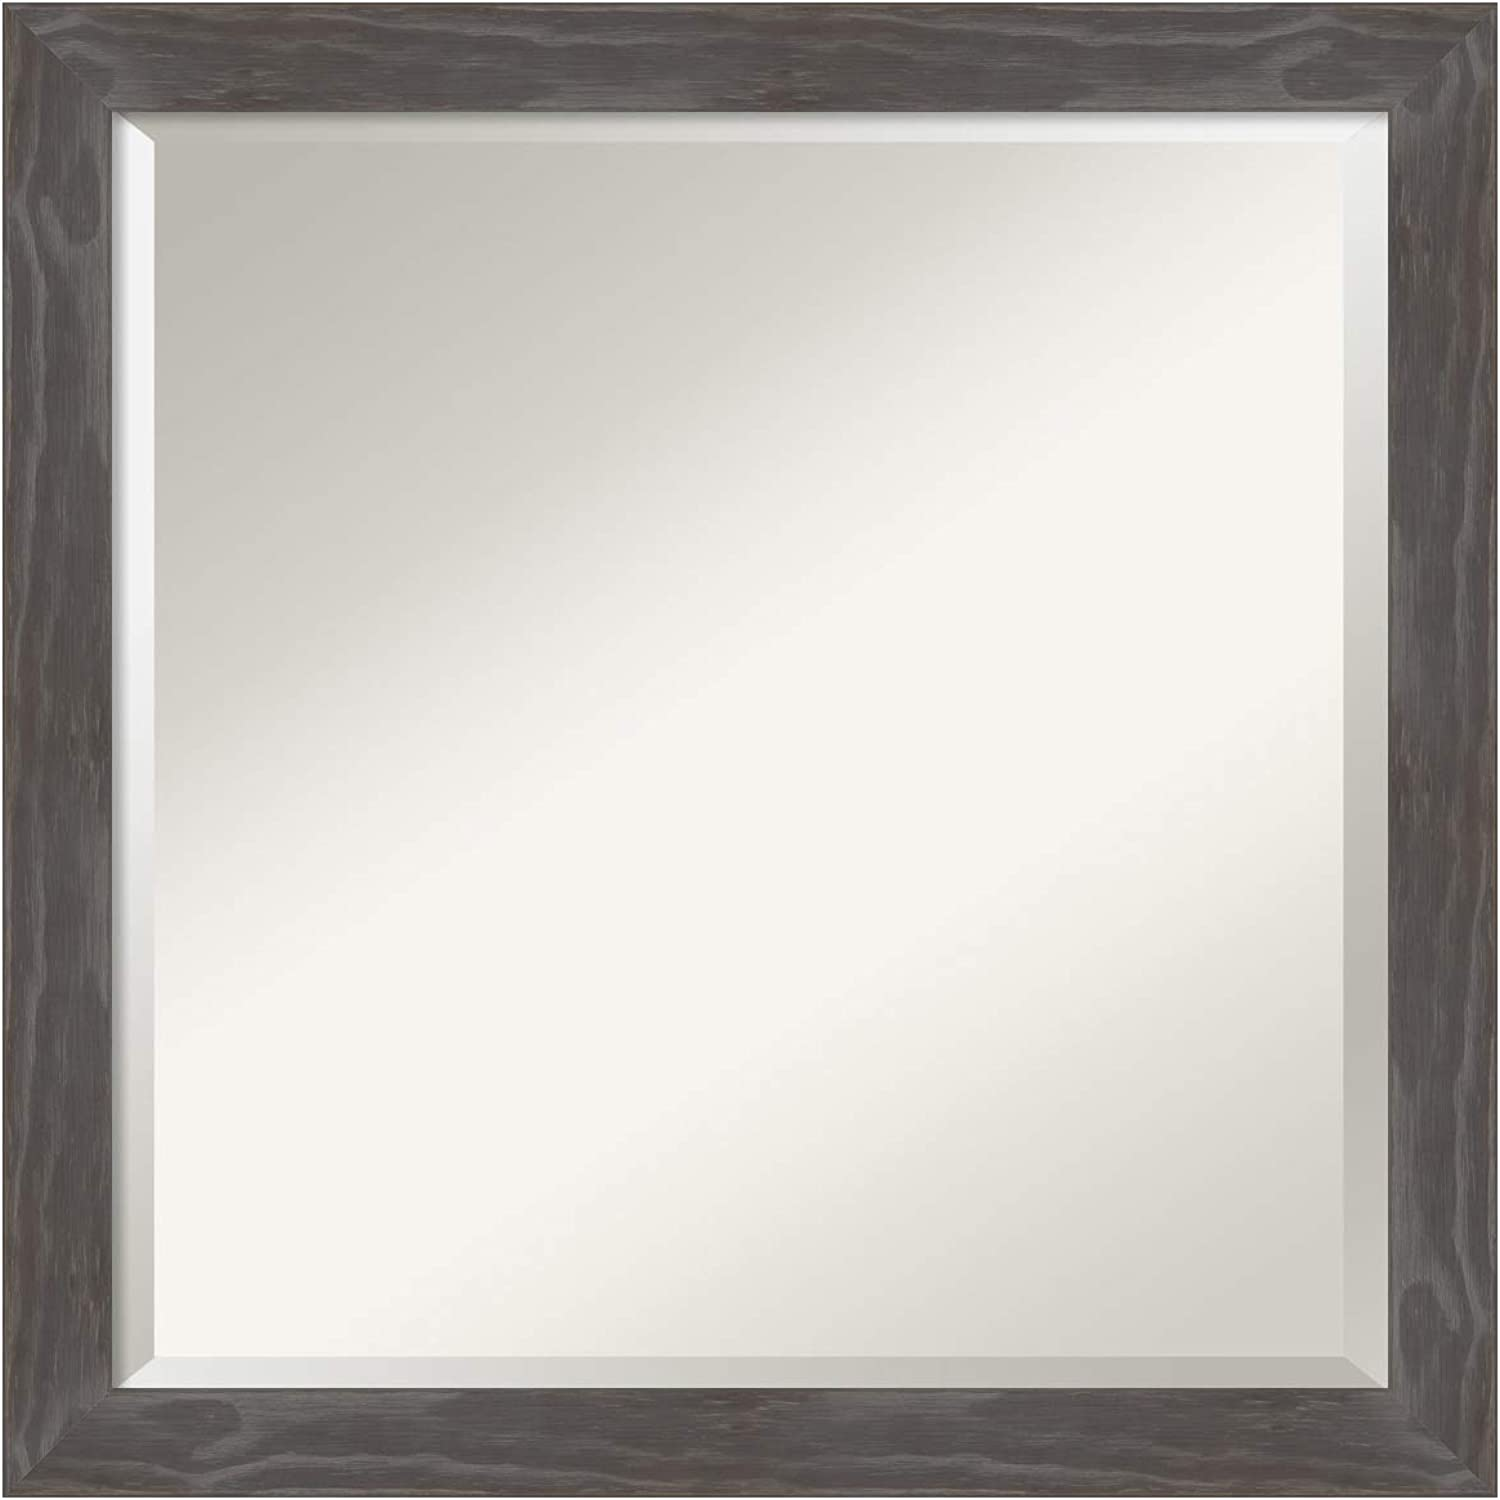 Bathroom Mirror Square, Fits Standard 24 in. Cabinet, Woodridge Rustic Grey  Outer Size 23 x 23